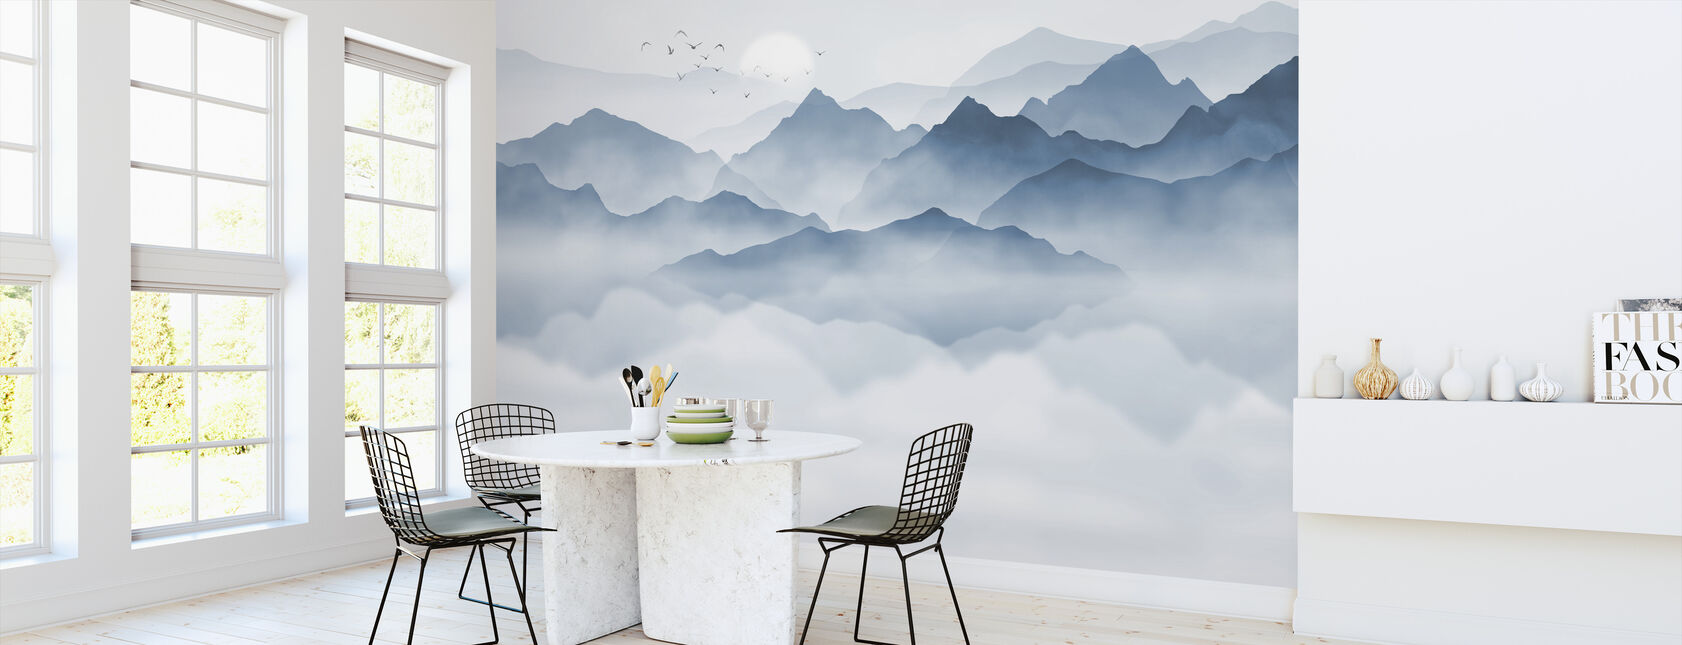 Mountainous - Wallpaper - Kitchen